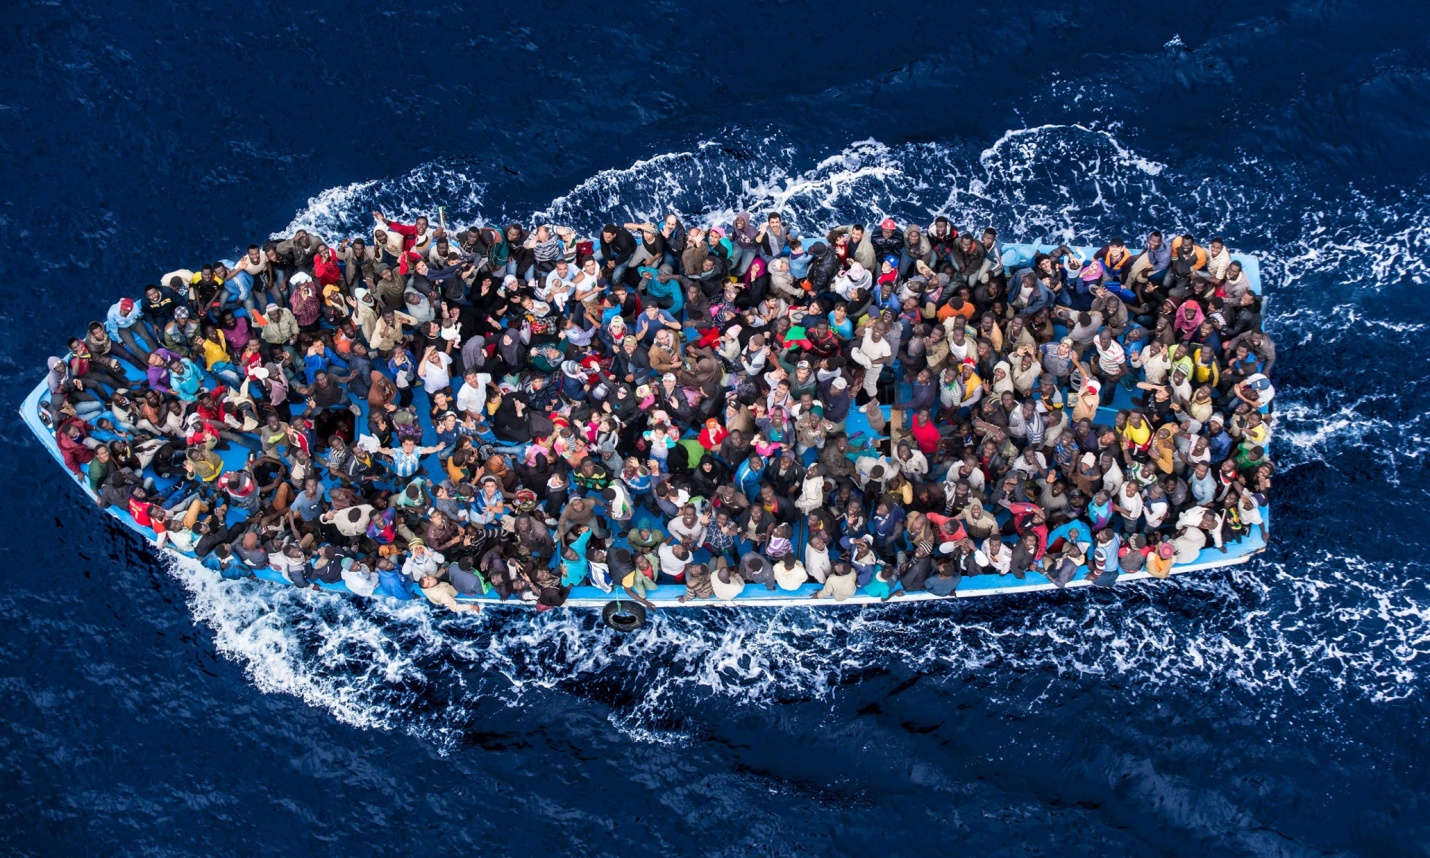 Migrants crossing the Mediterranean - Distanation Europe